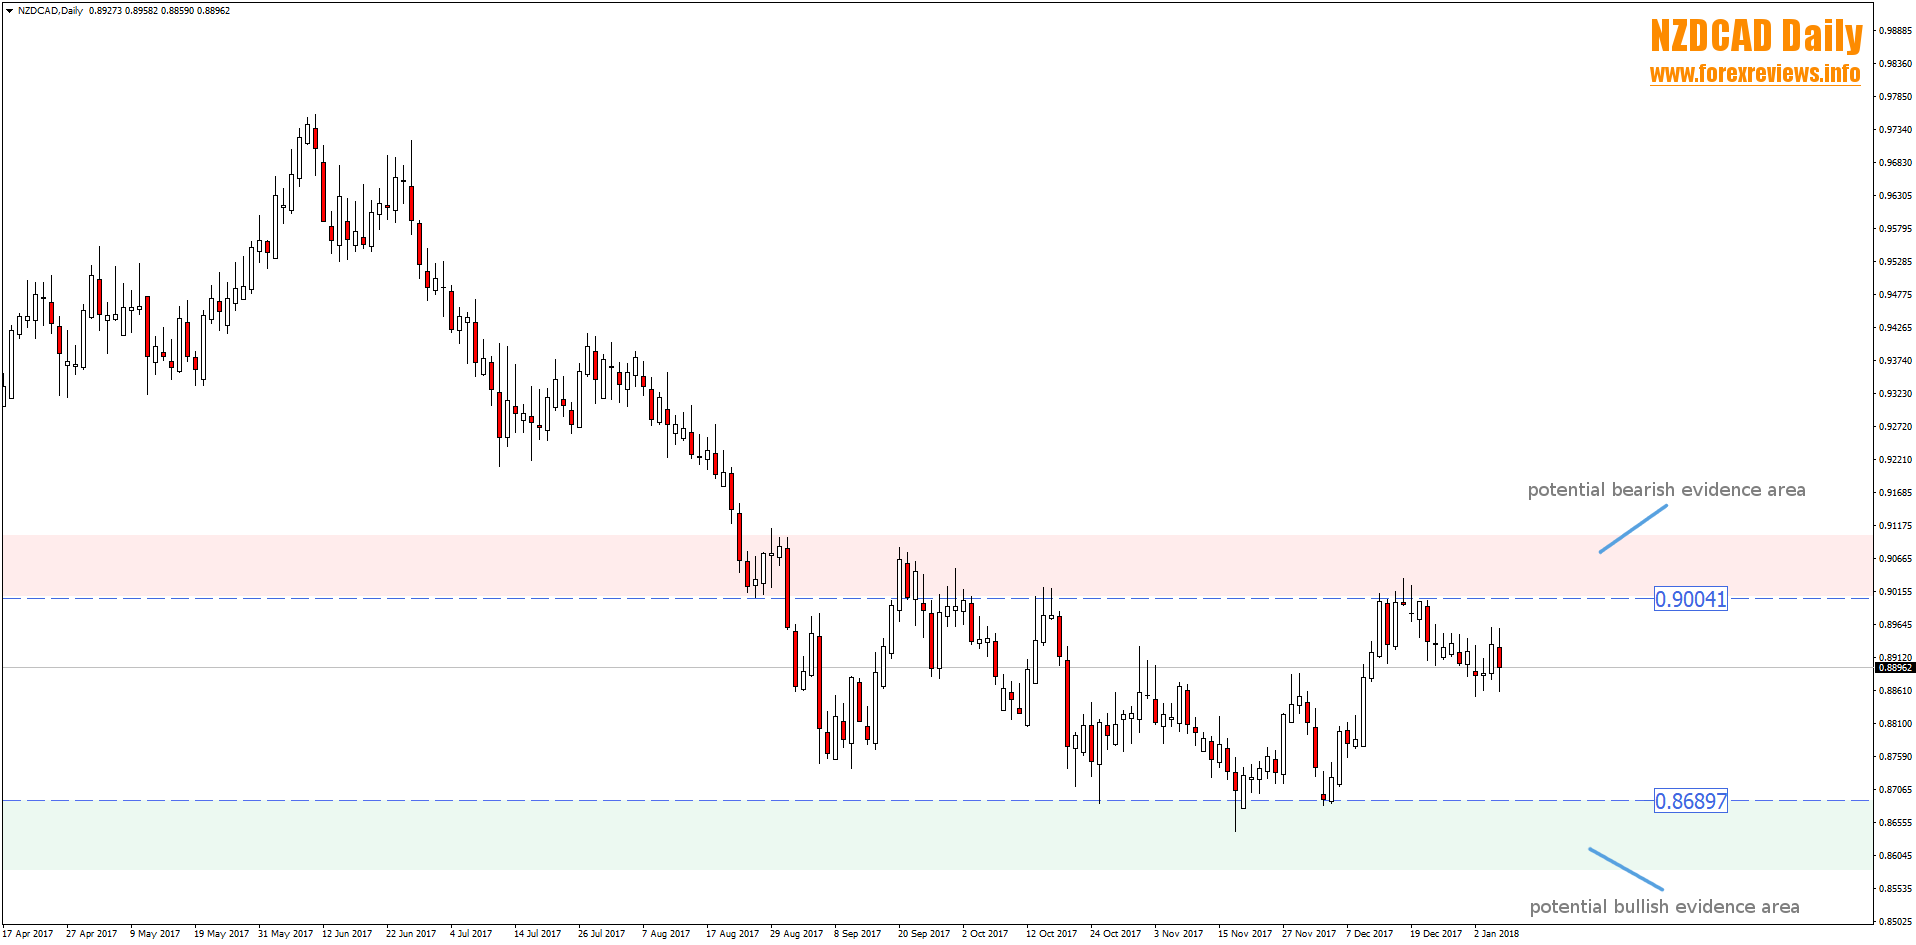 nzdcad daily trading areas